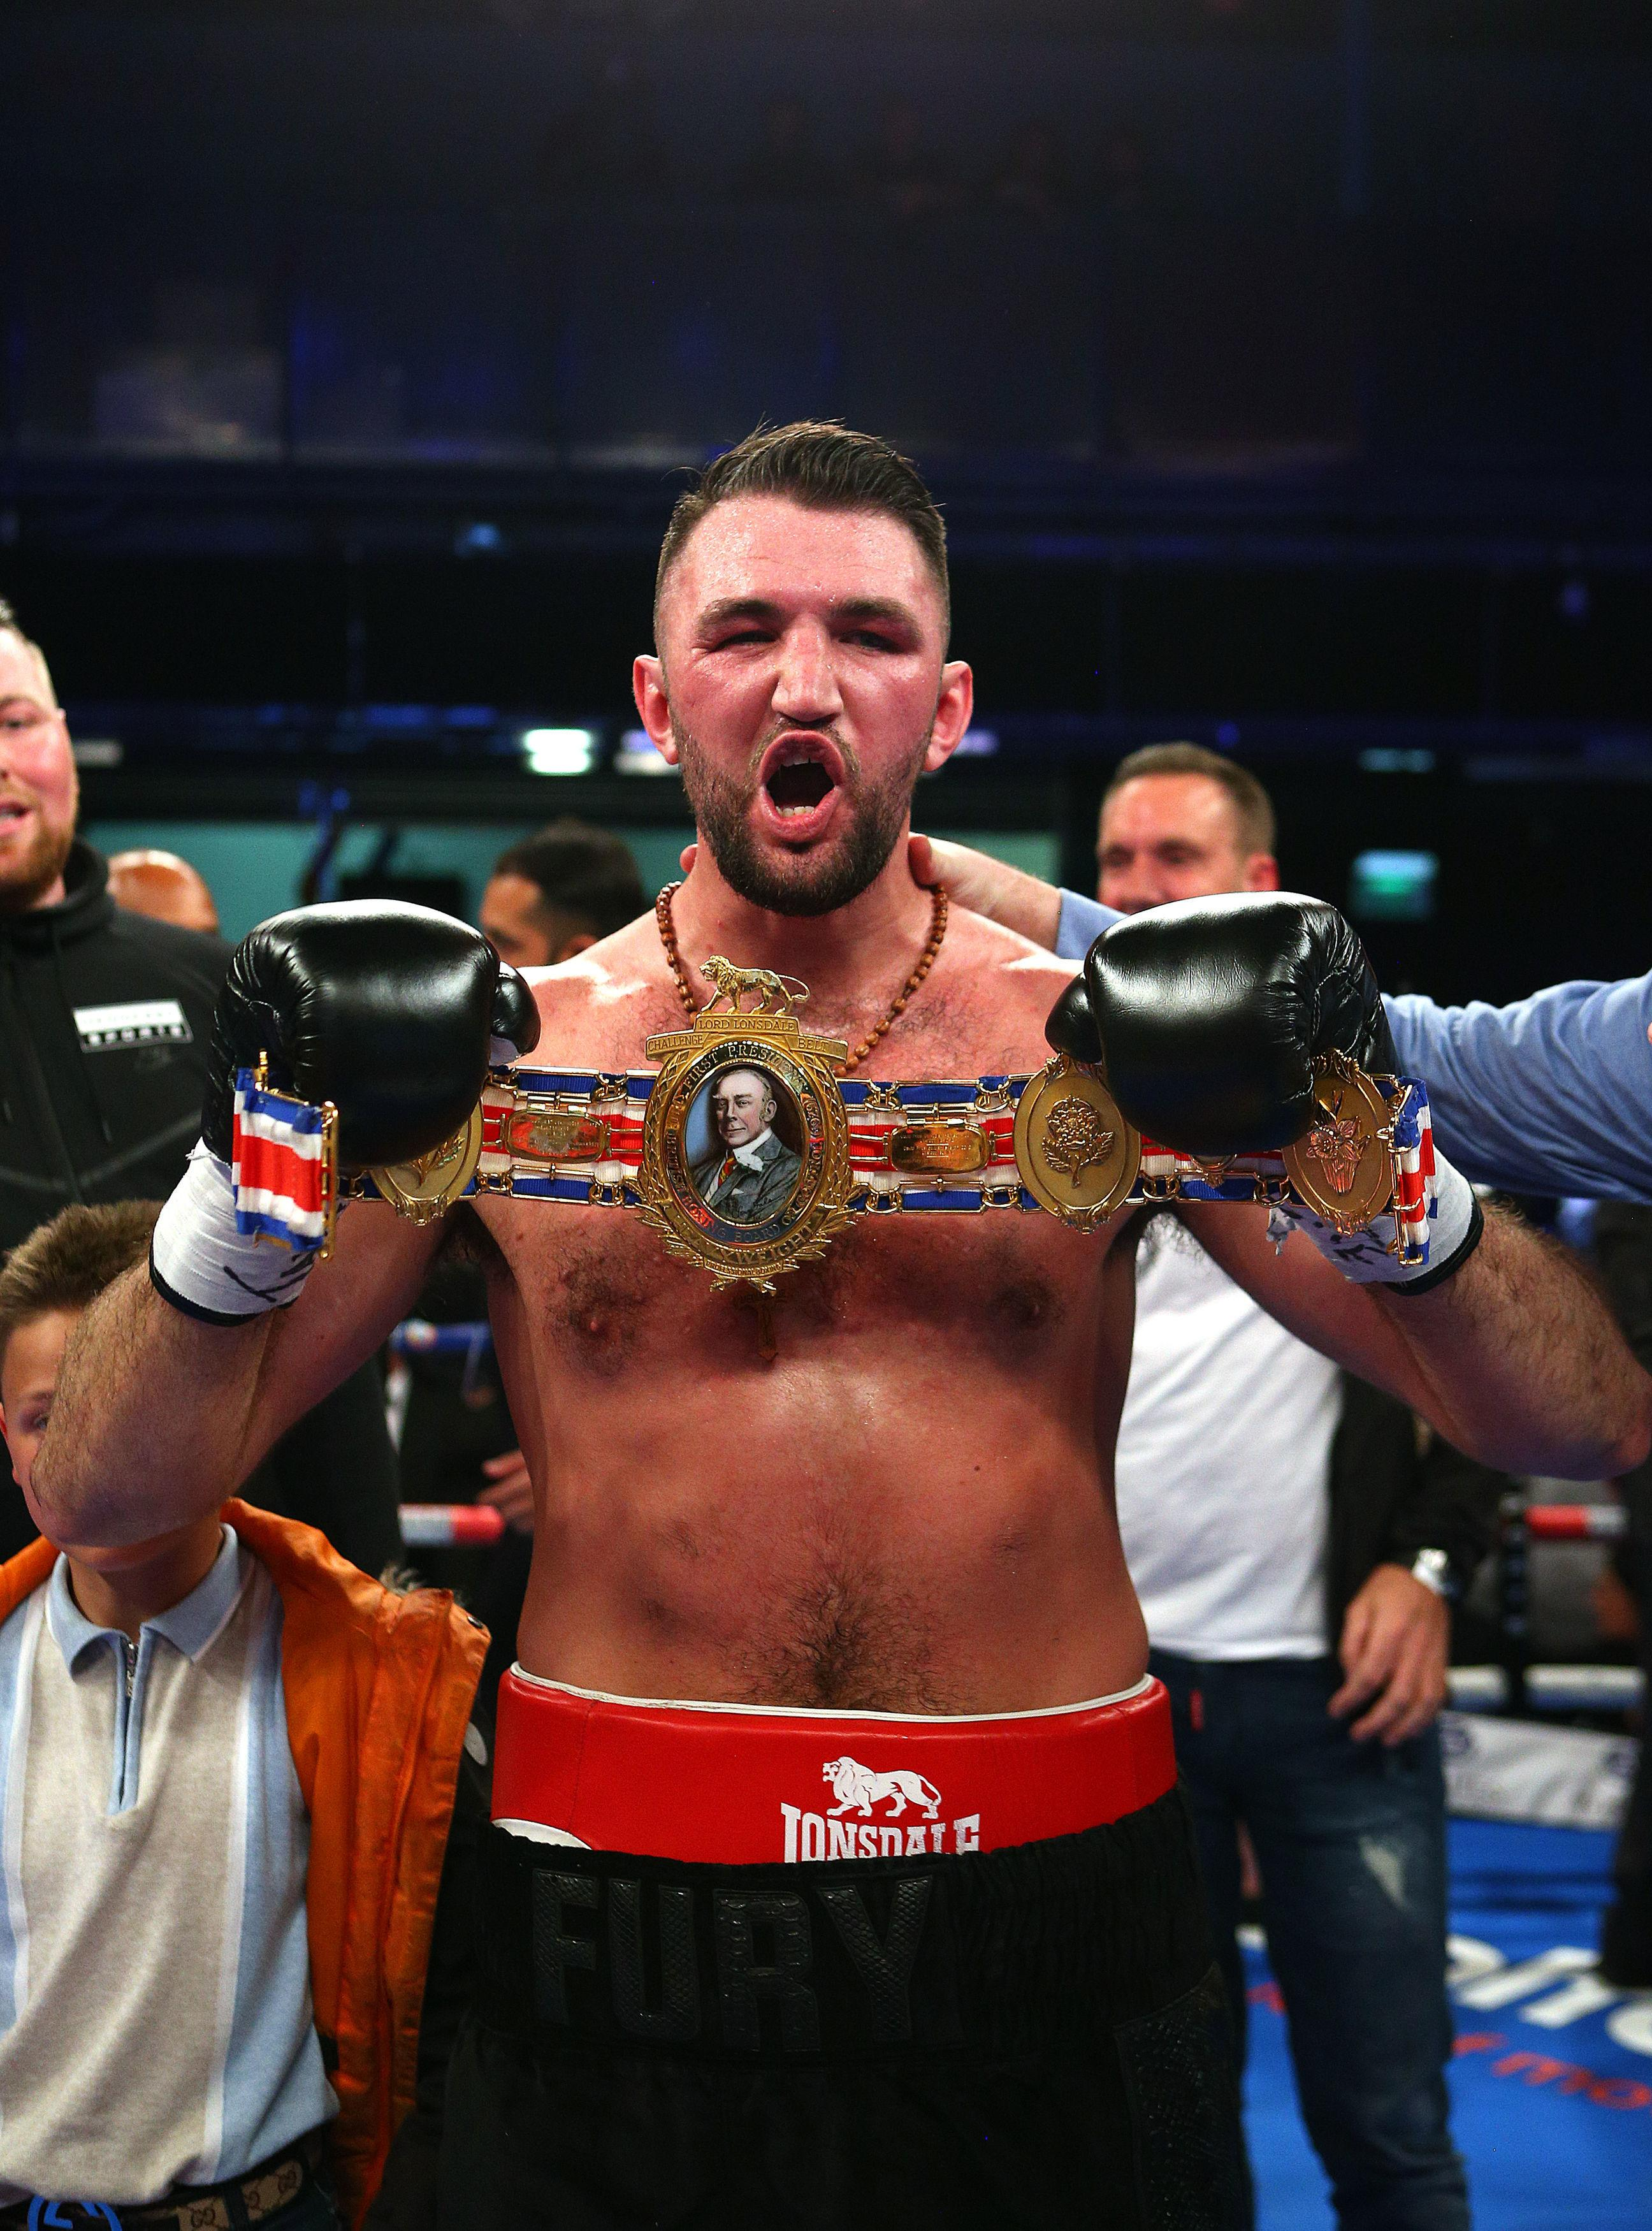 Hughie Fury reacts after beating Sam Sexton to become the British heavyweight champion